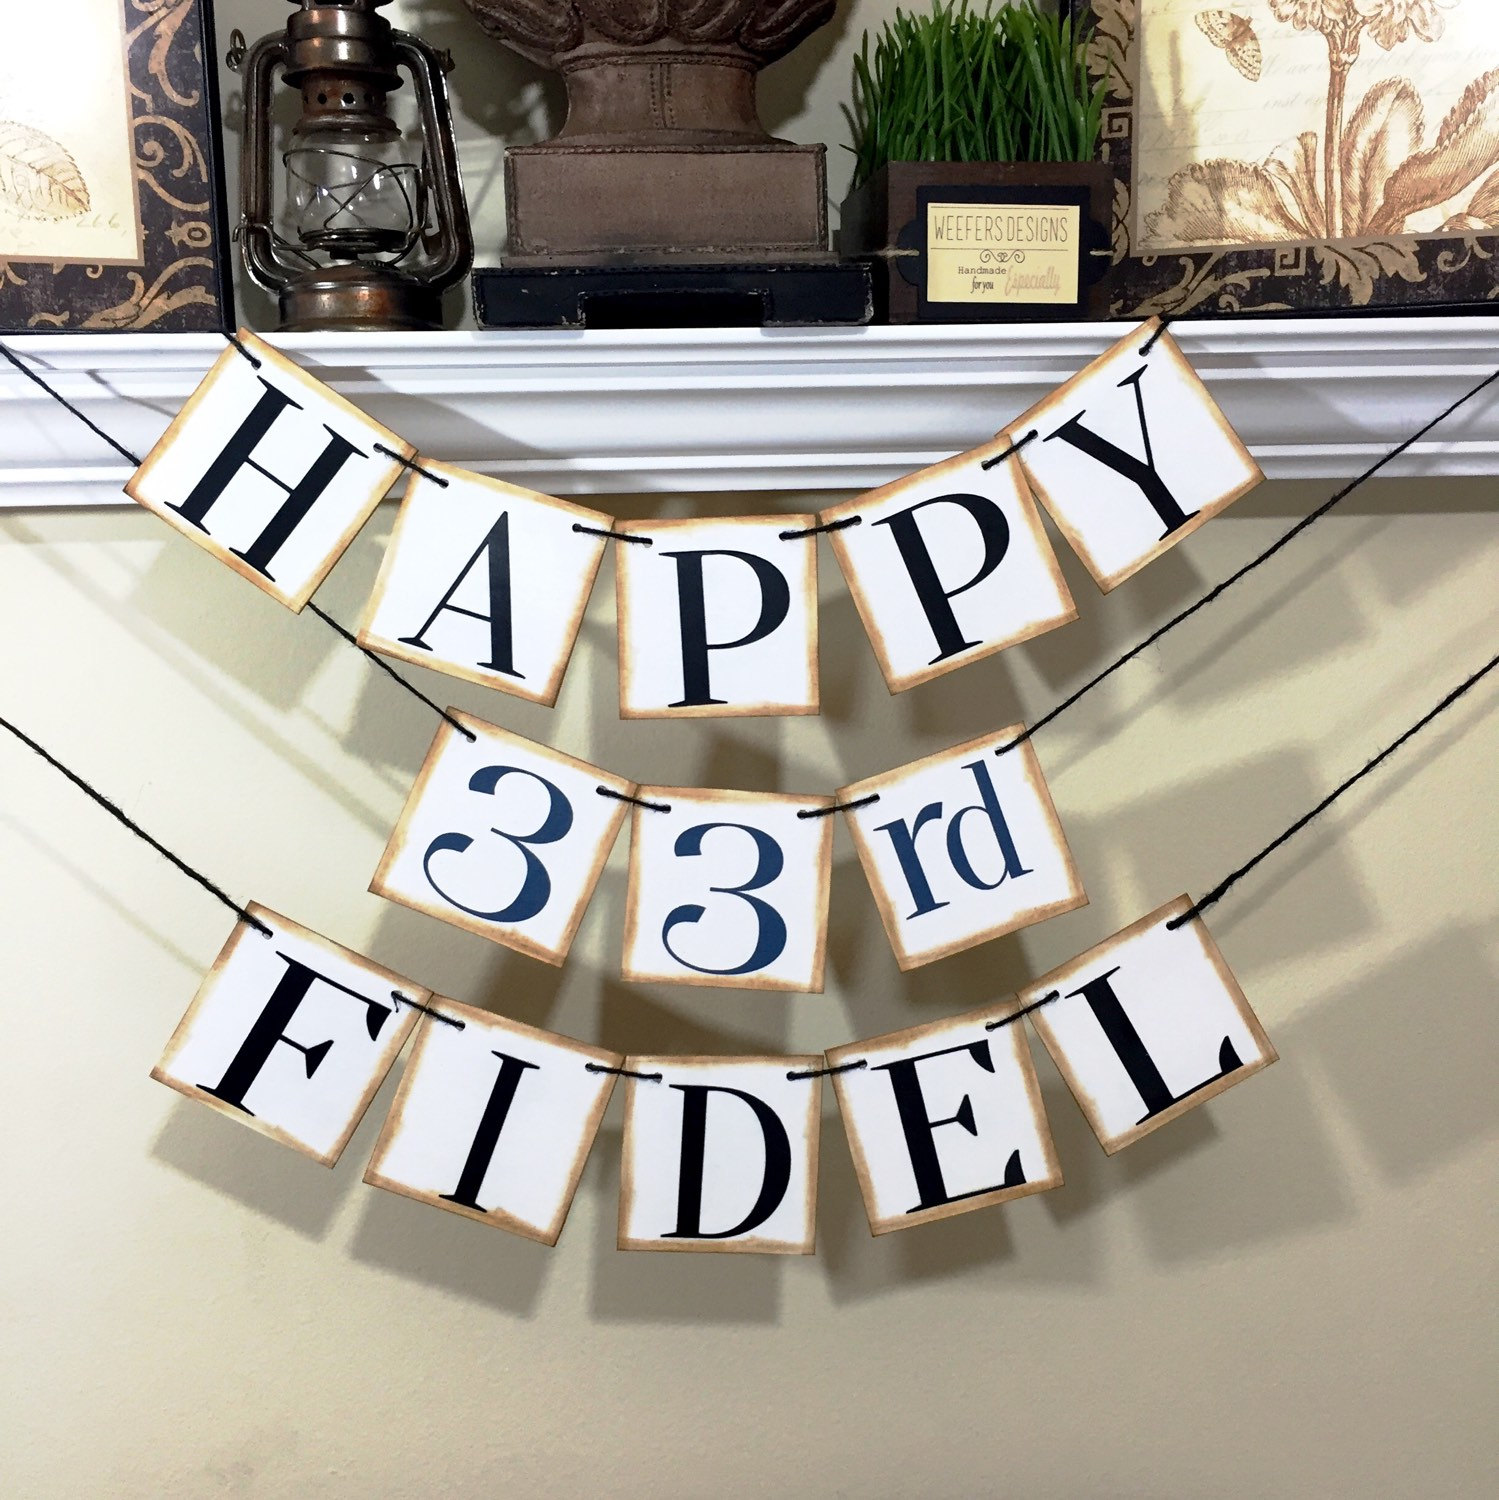 21st birthday banners personalized ; d68c1b19609729af12d76bab254bb7d8